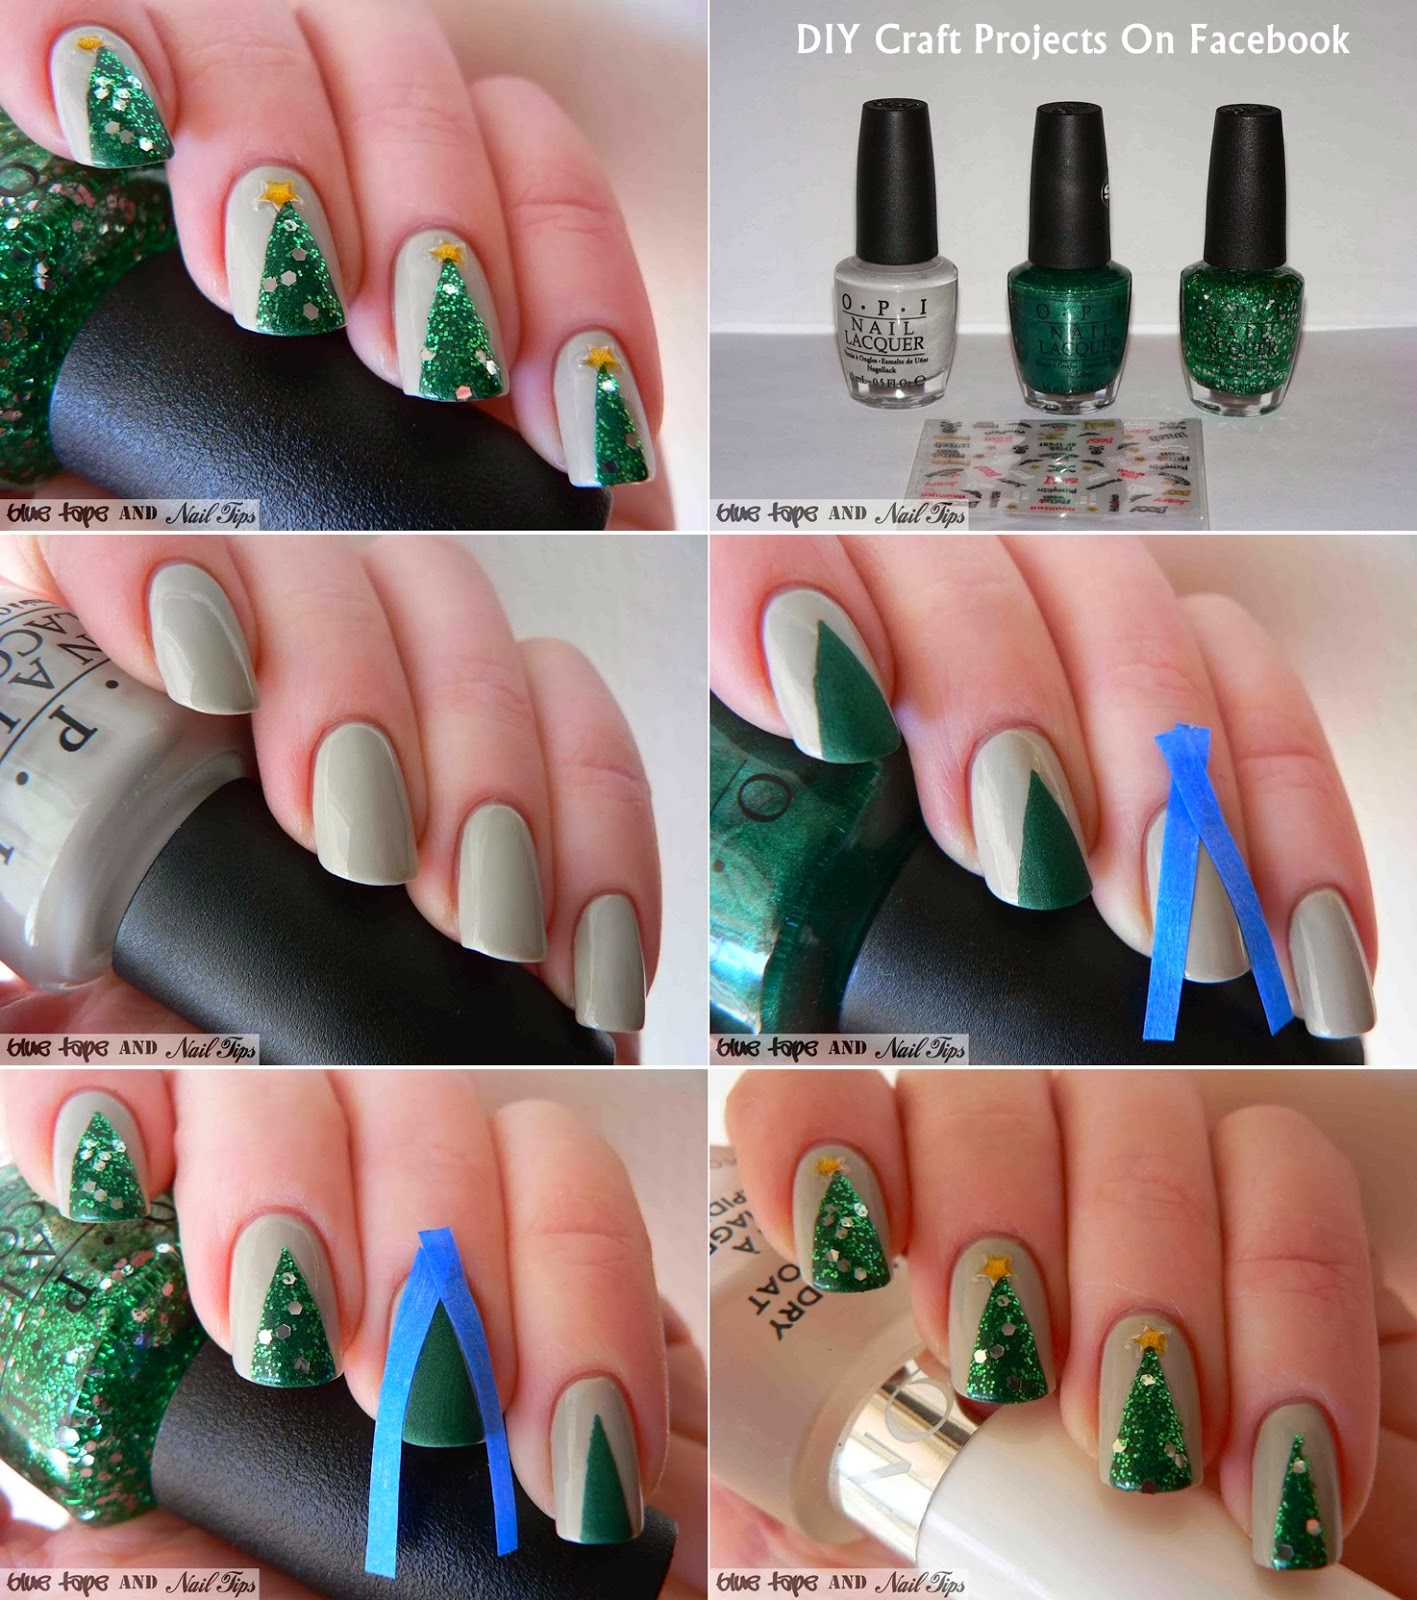 Nails designs easy sonundrobin nails designs easy prinsesfo Choice Image